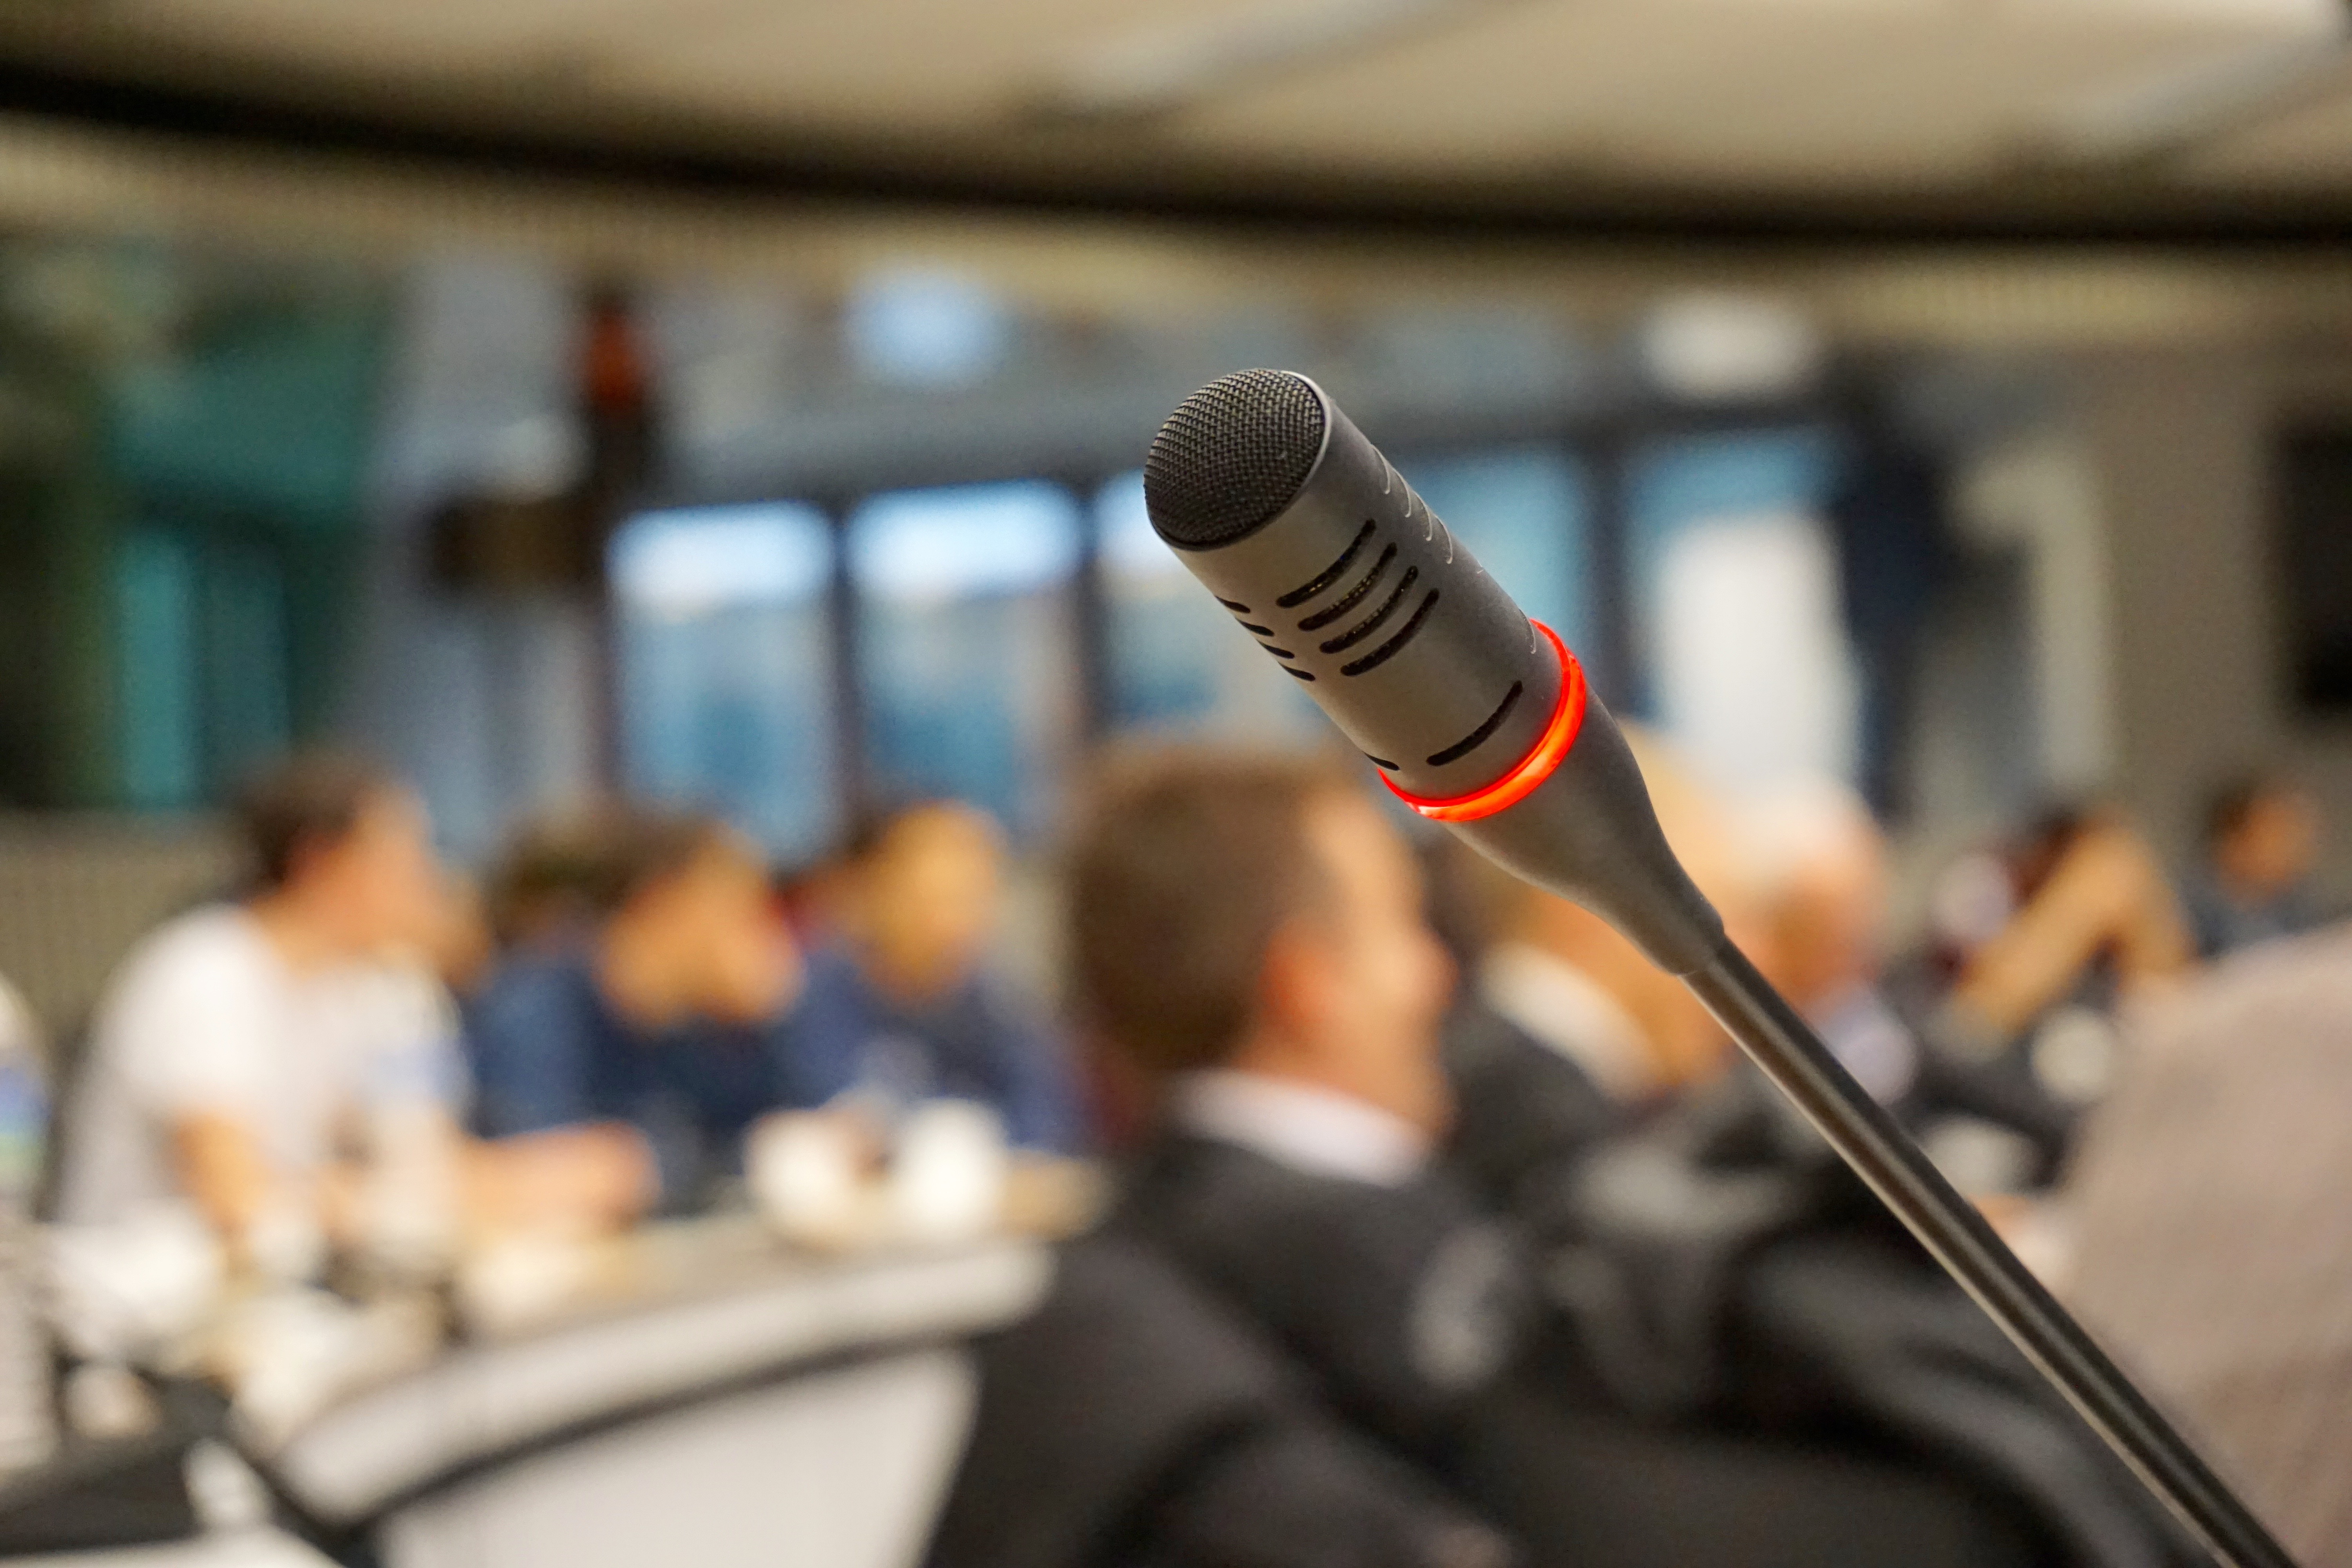 BVEP warns of catastrophic and irreversible consequences for the UK events industry without immediate practical opening guidelines being provided by the UK Government